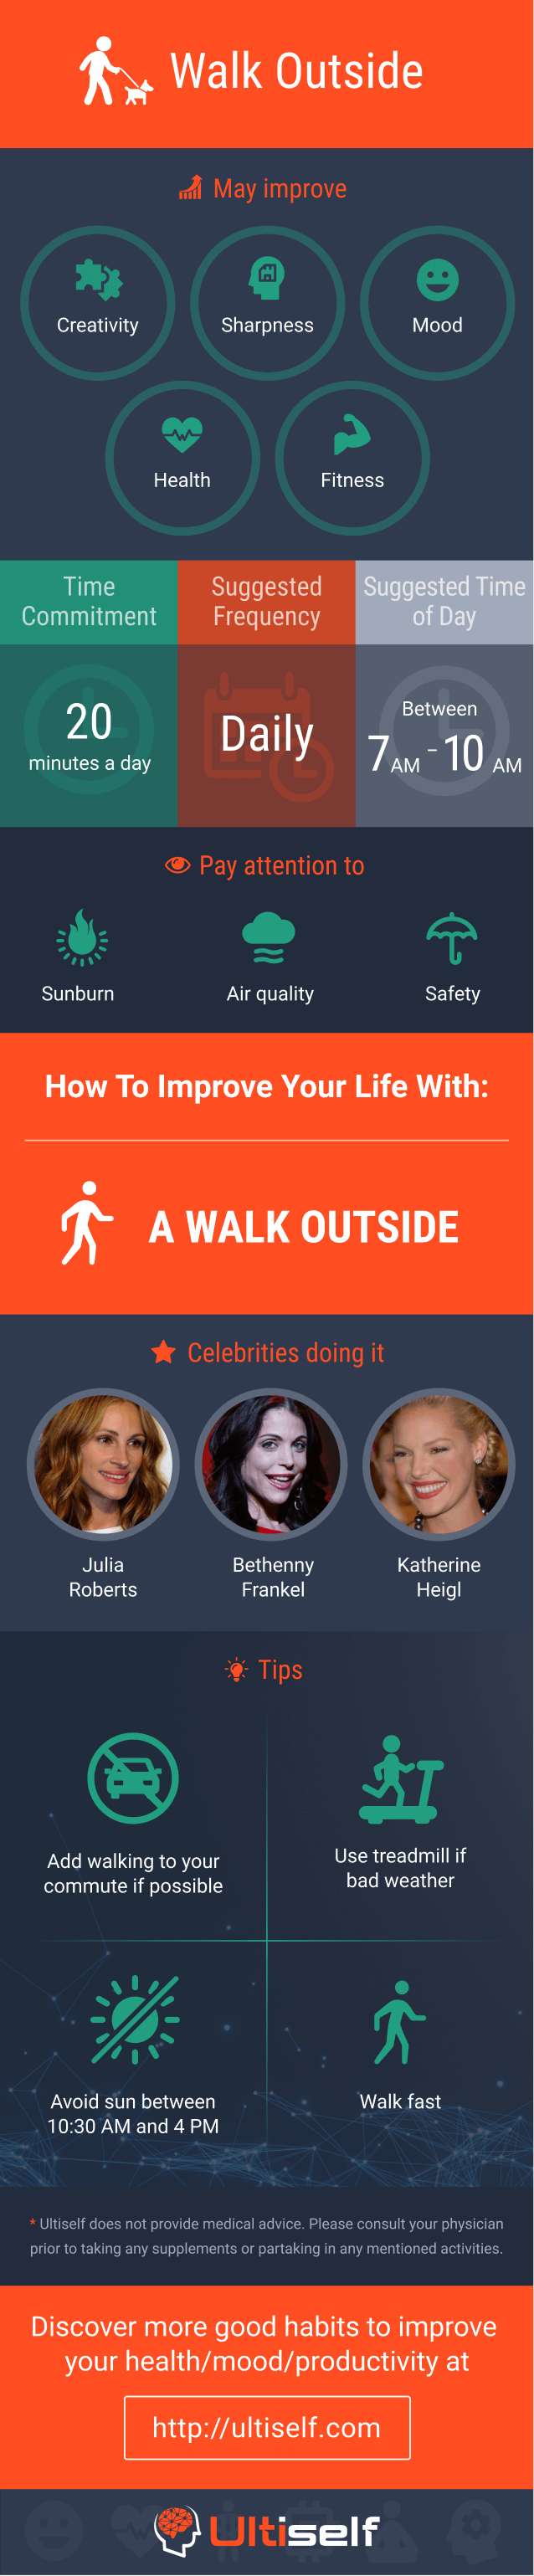 Walk outside infographic